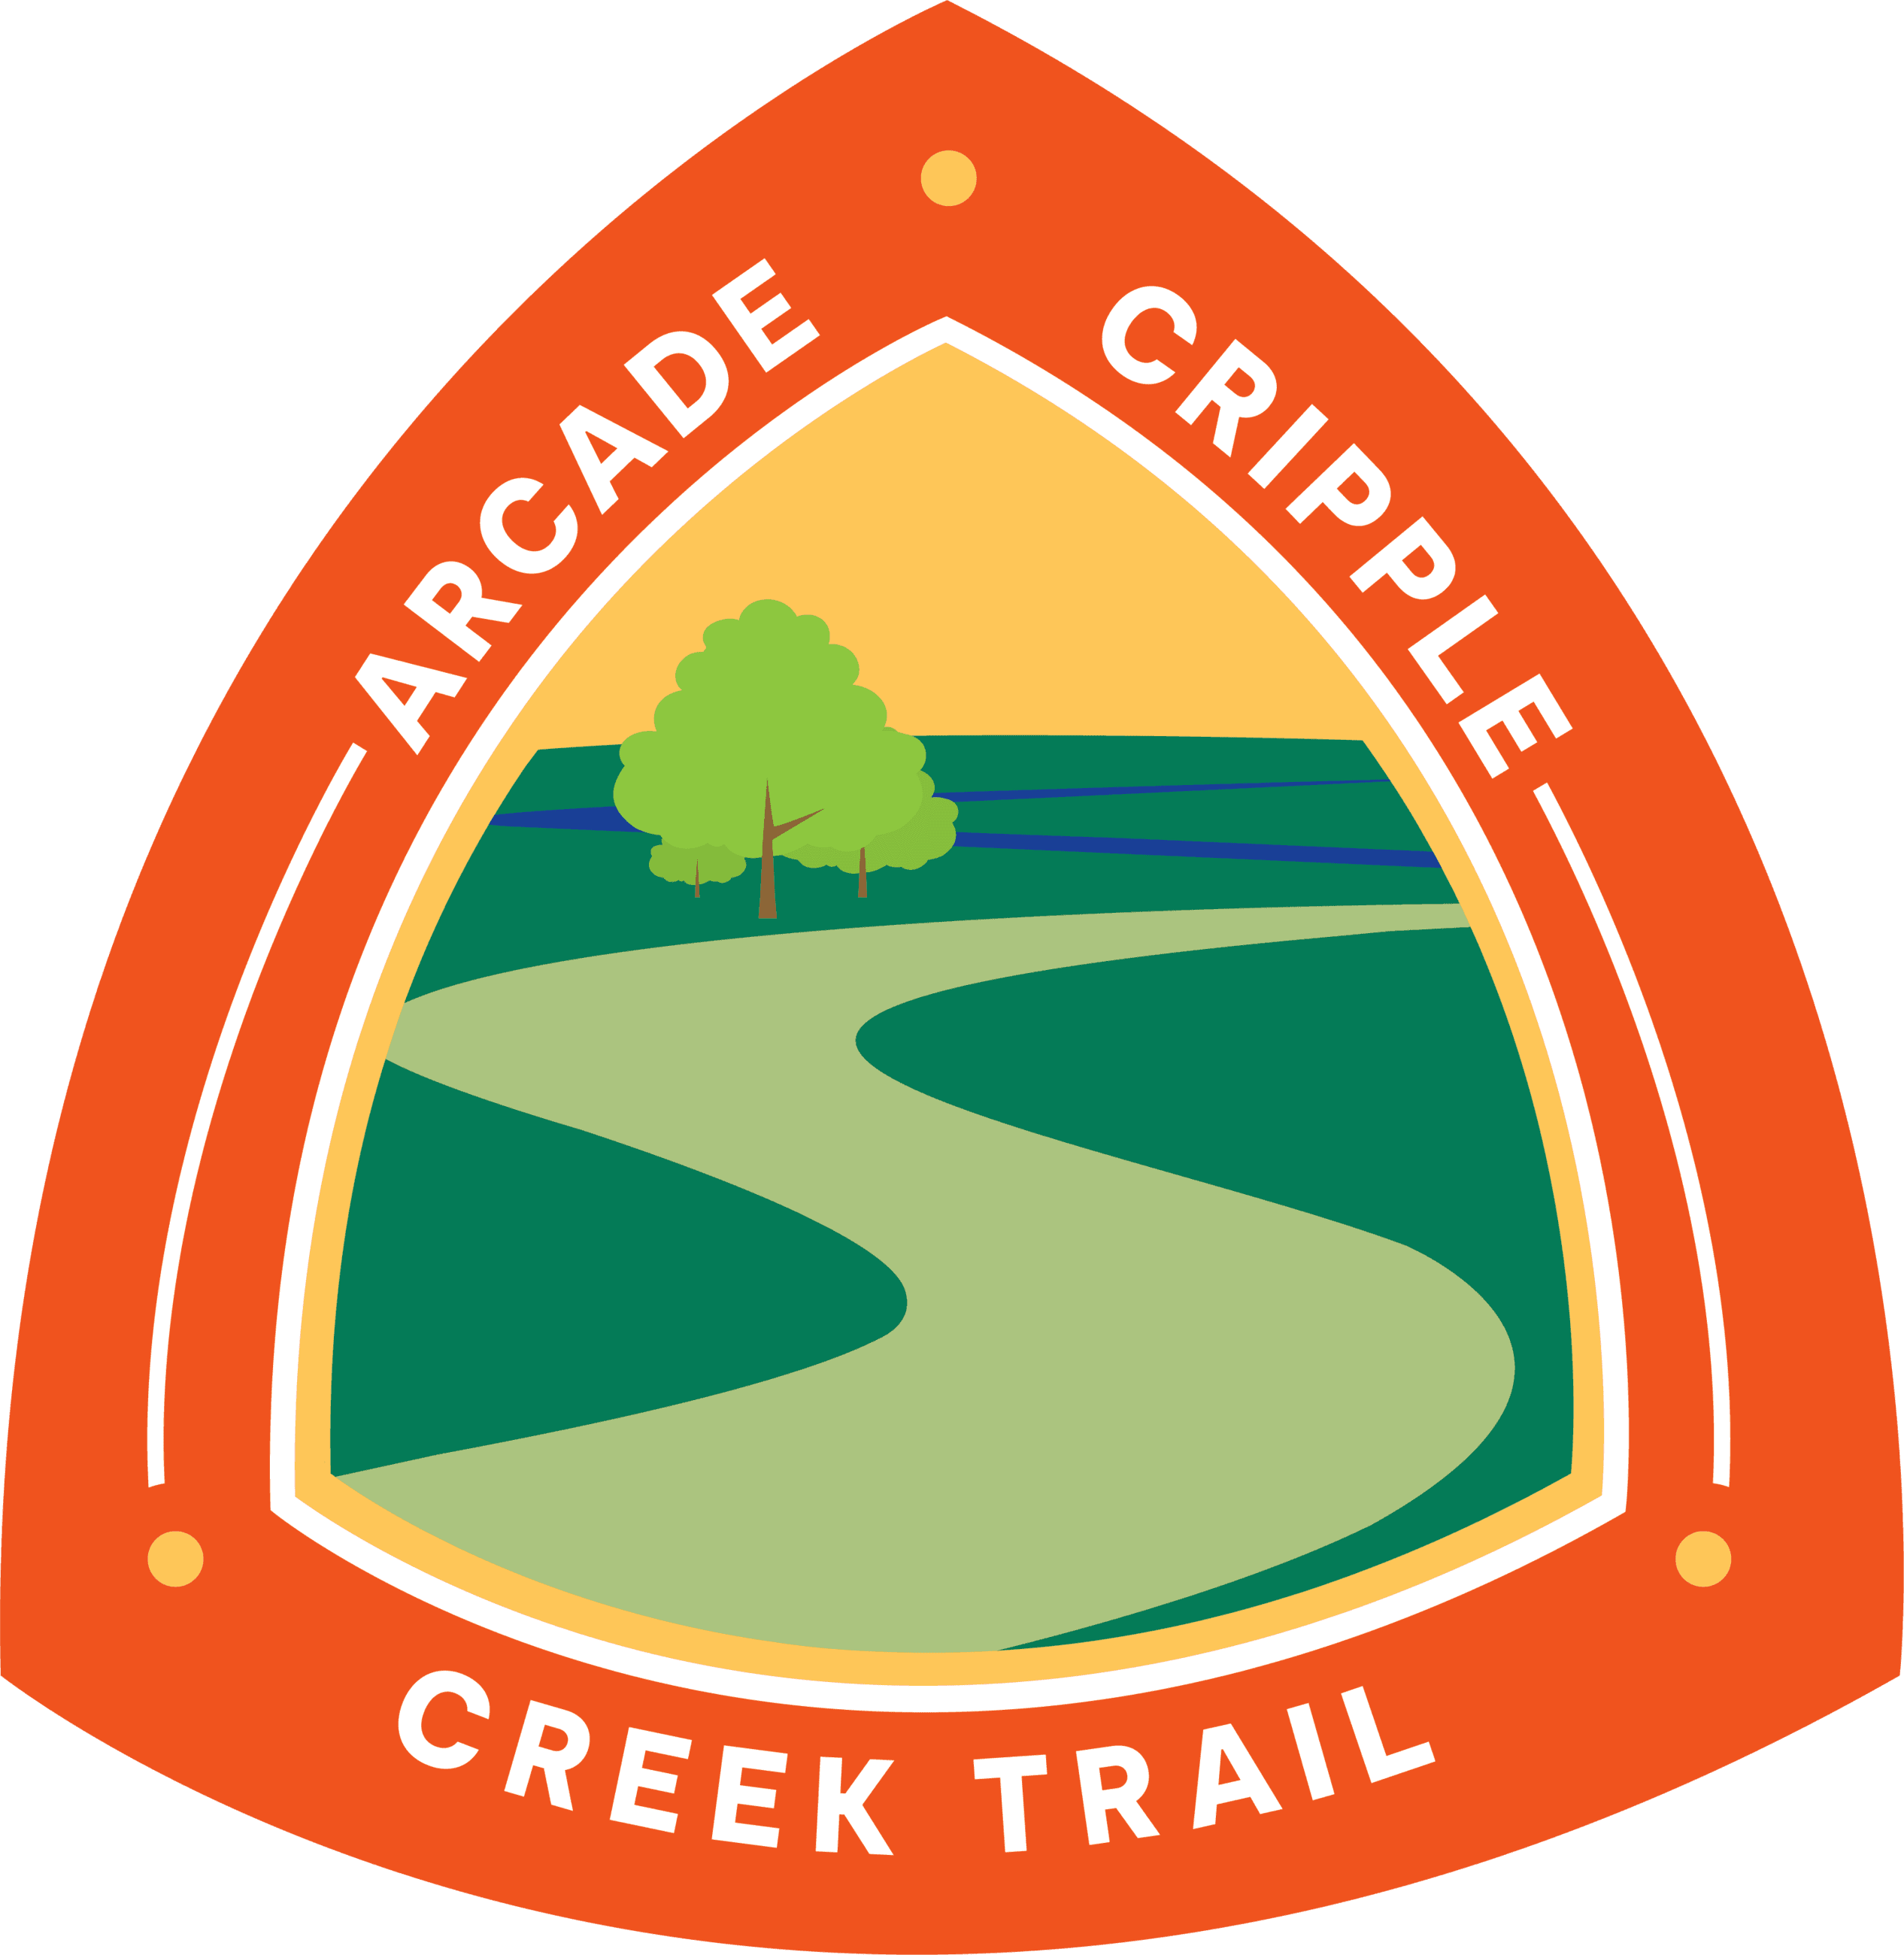 Arcade-Cripple Creek Trail Signs 04202021